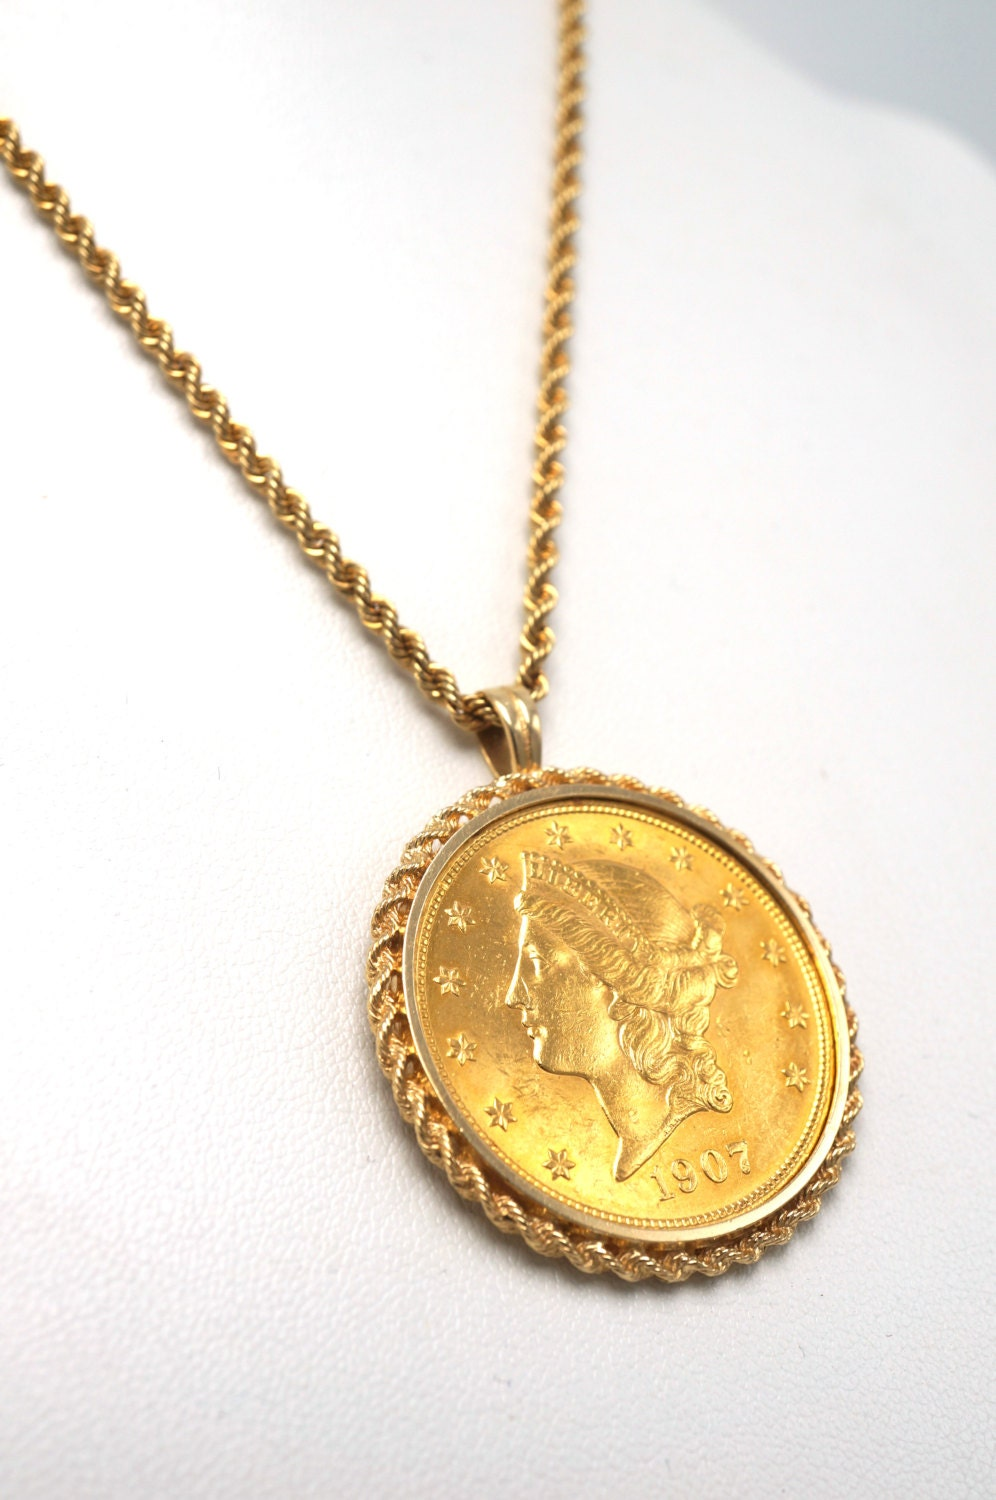 Vintage 1907 liberty gold coin jewelry pendant set in 14k rope vintage 1907 liberty gold coin jewelry pendant set in 14k rope bezel with 14k gold rope chain aloadofball Image collections